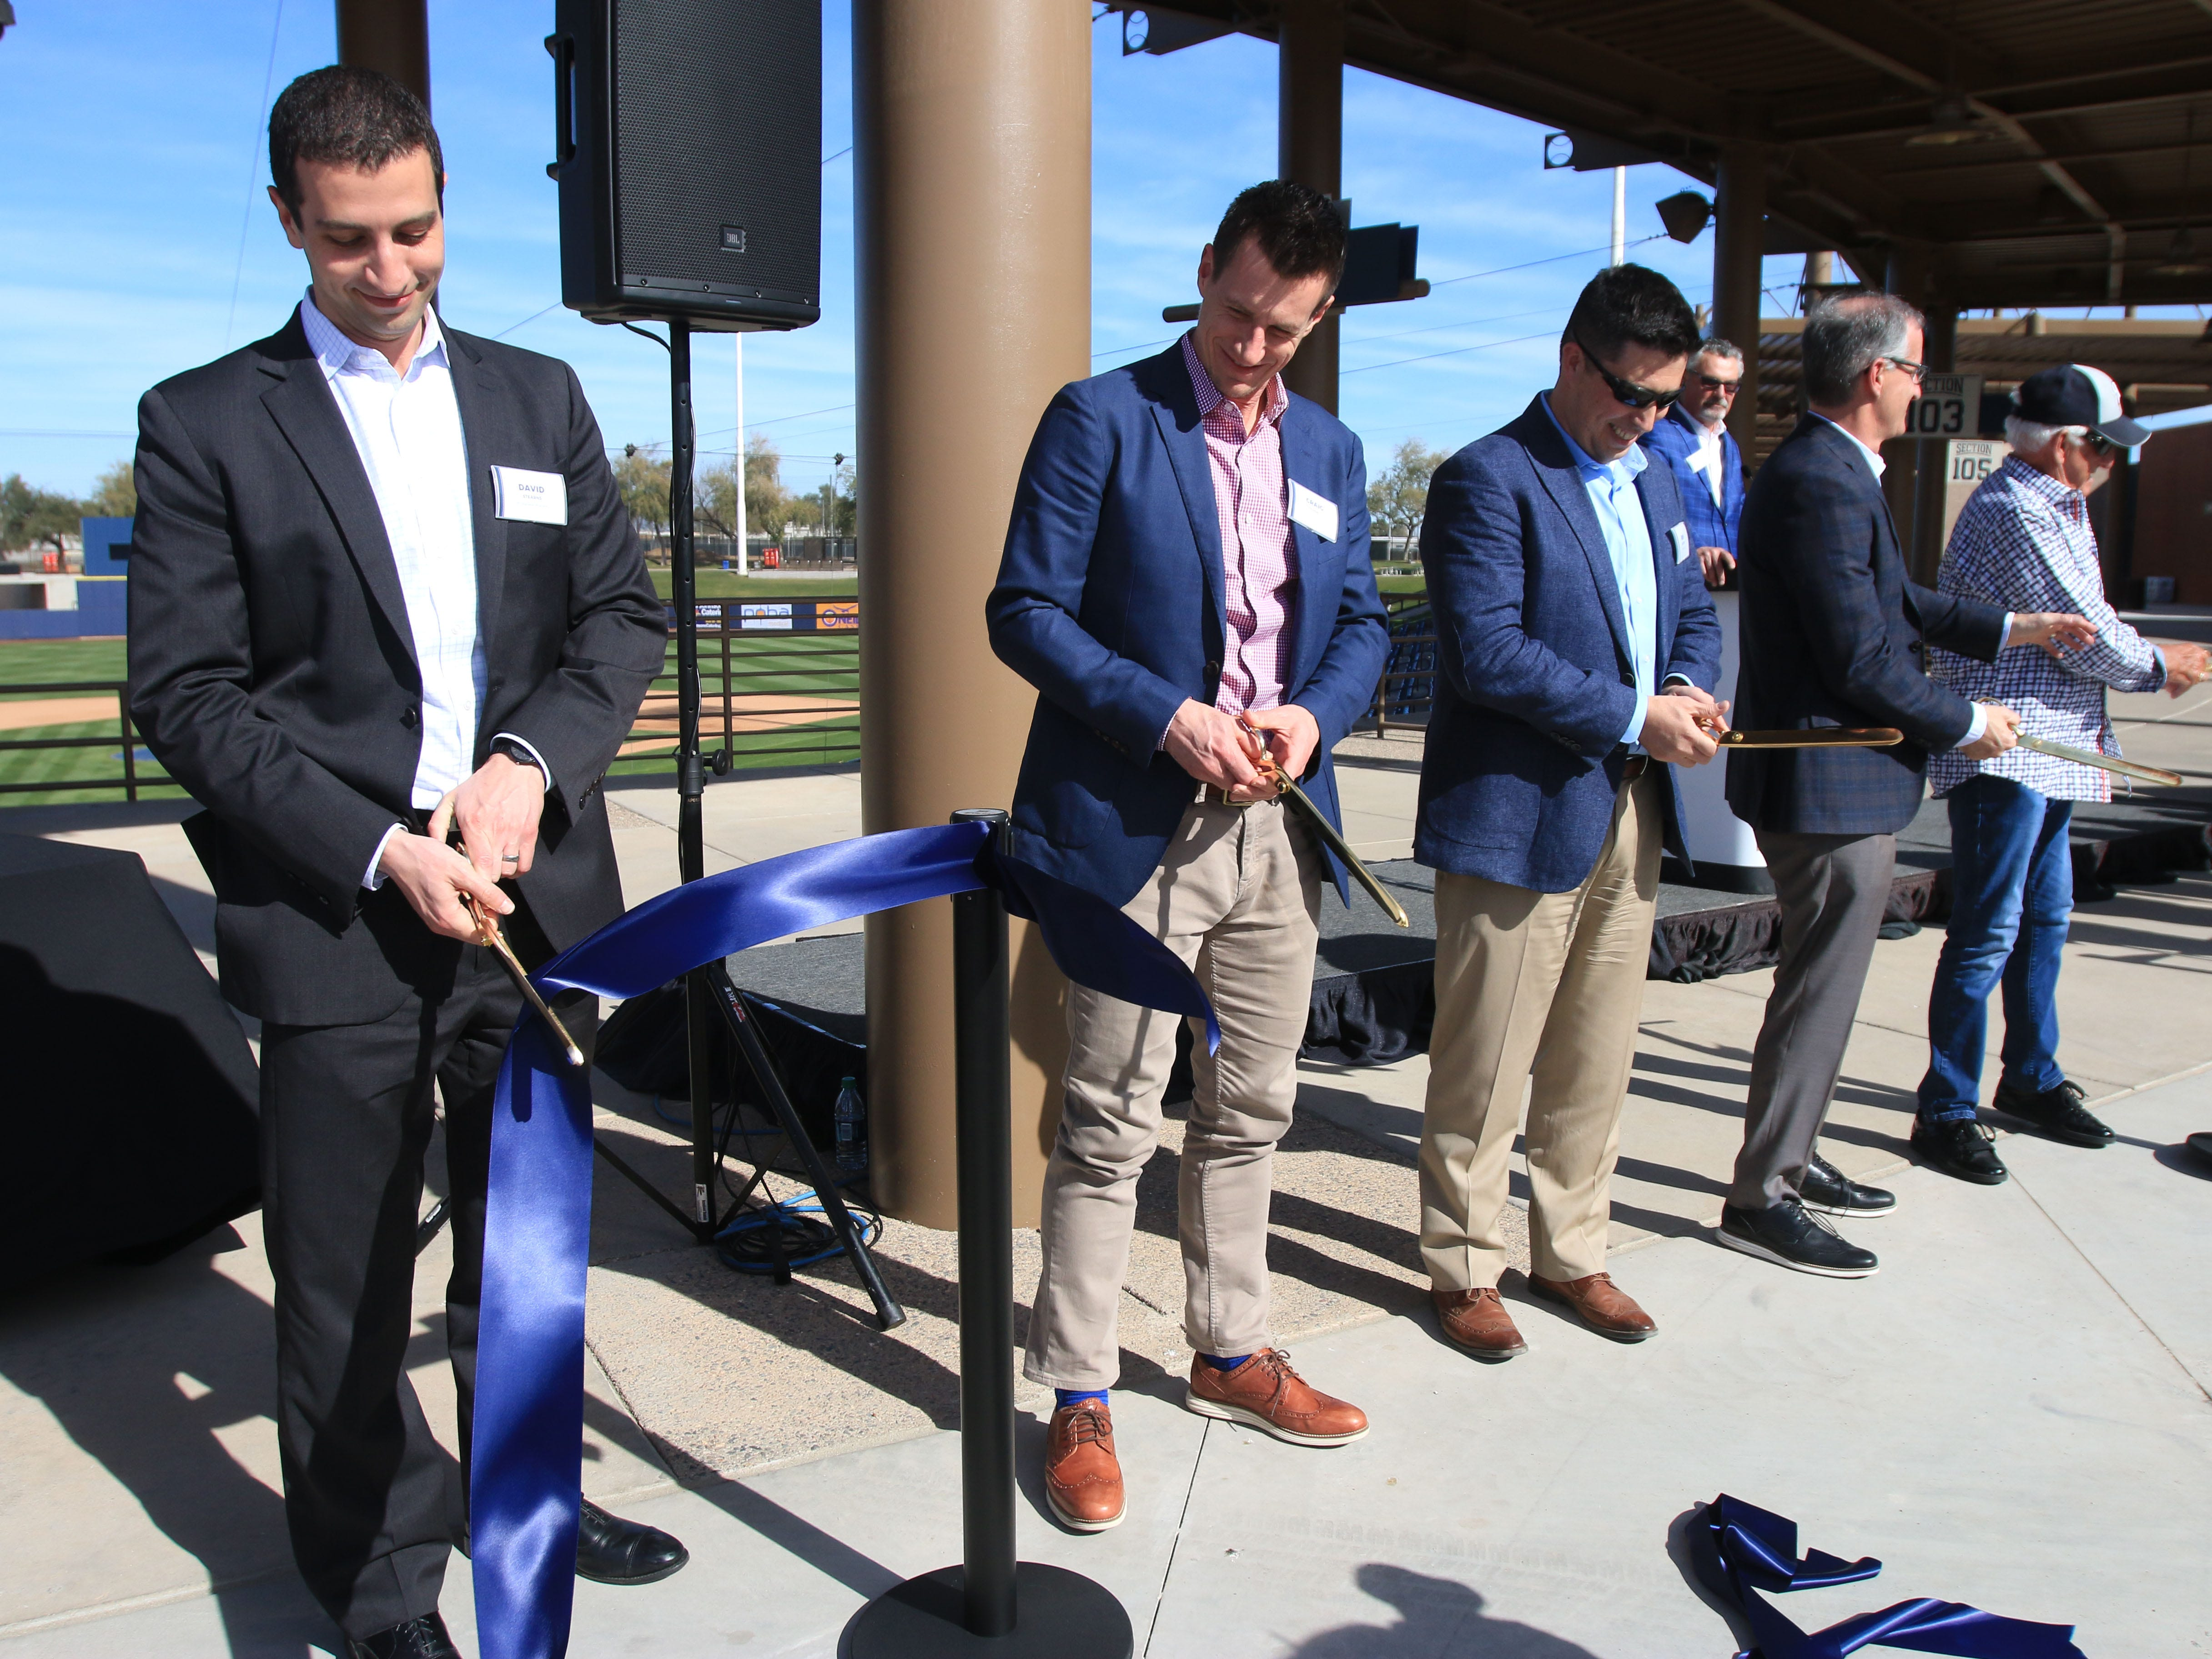 From left, Brewers general manager David Sterns, manager Craig Counsell, Ben Goetter of the Phoenix leadership team, president of business operations Rick Schlesinger and broadcaster Bob Uecker were among those helping to unveil the Milwaukee Brewers Spring Training facility named American Family Fields of Phoenix, during a ribbon-cutting ceremony on Tuesday.